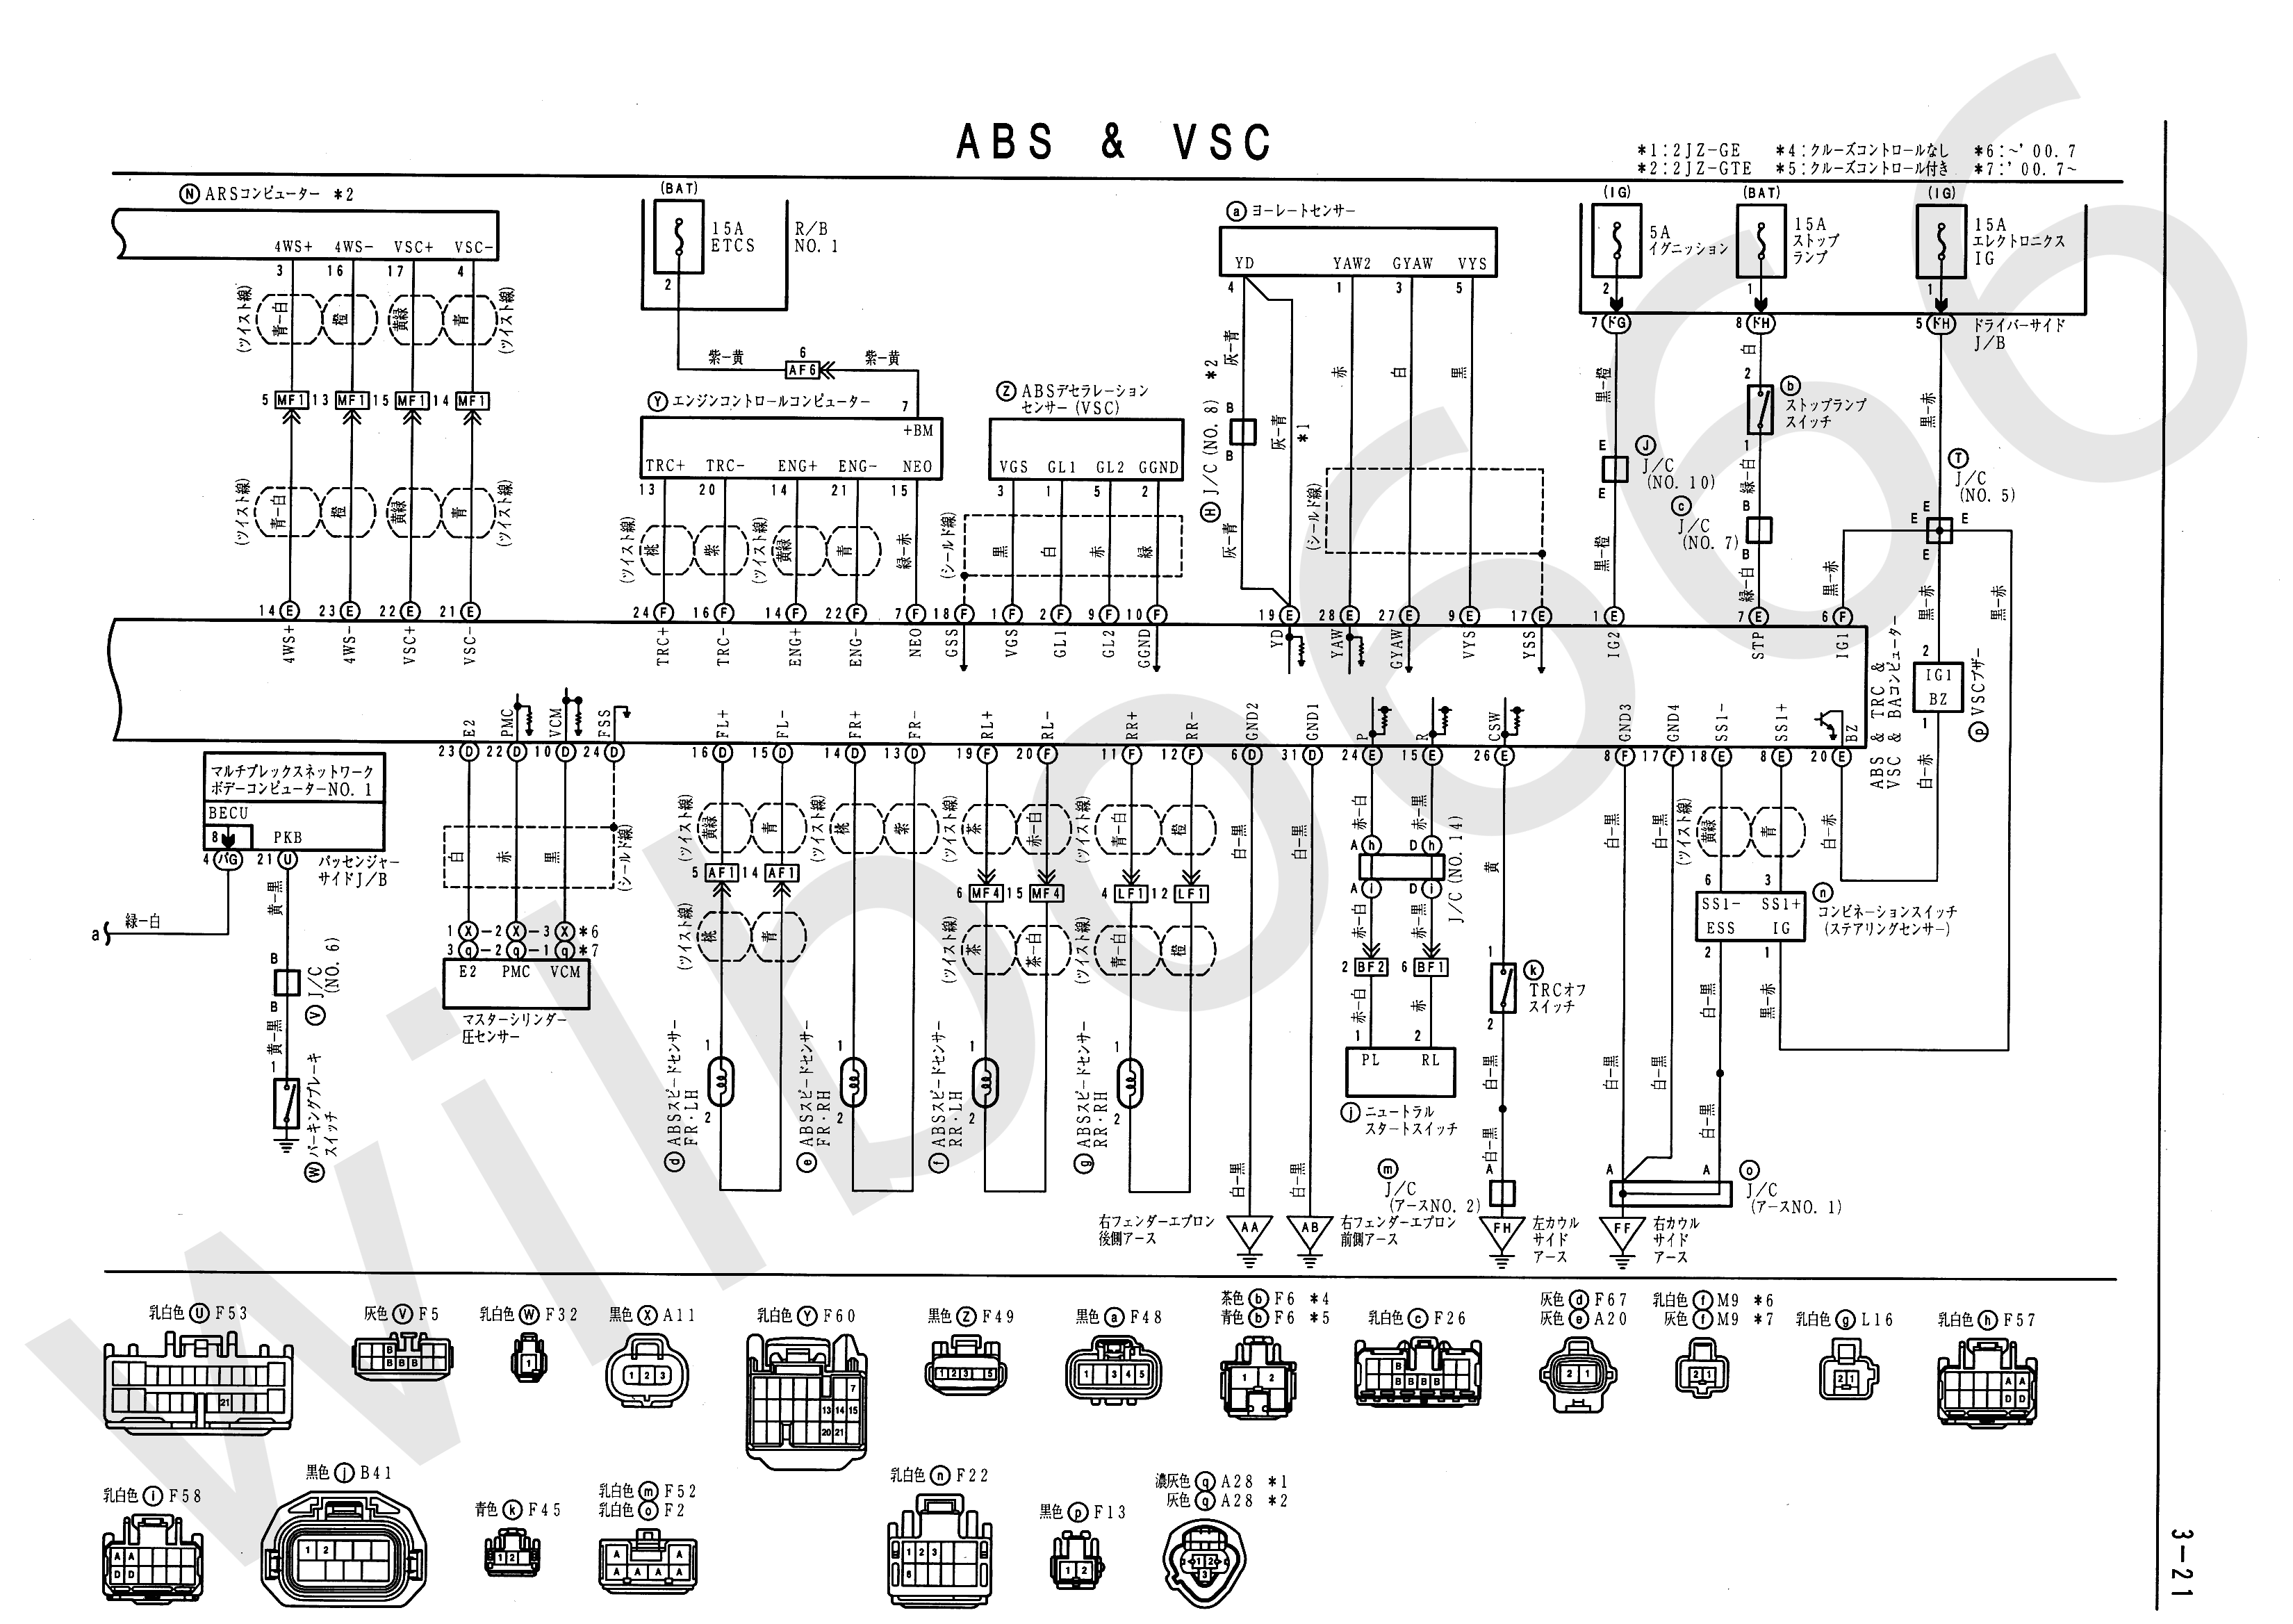 JZS161 Electrical Wiring Diagram 6748505 3 21 wilbo666 2jz gte vvti jzs161 aristo engine wiring 2jzgte vvti wiring harness at suagrazia.org